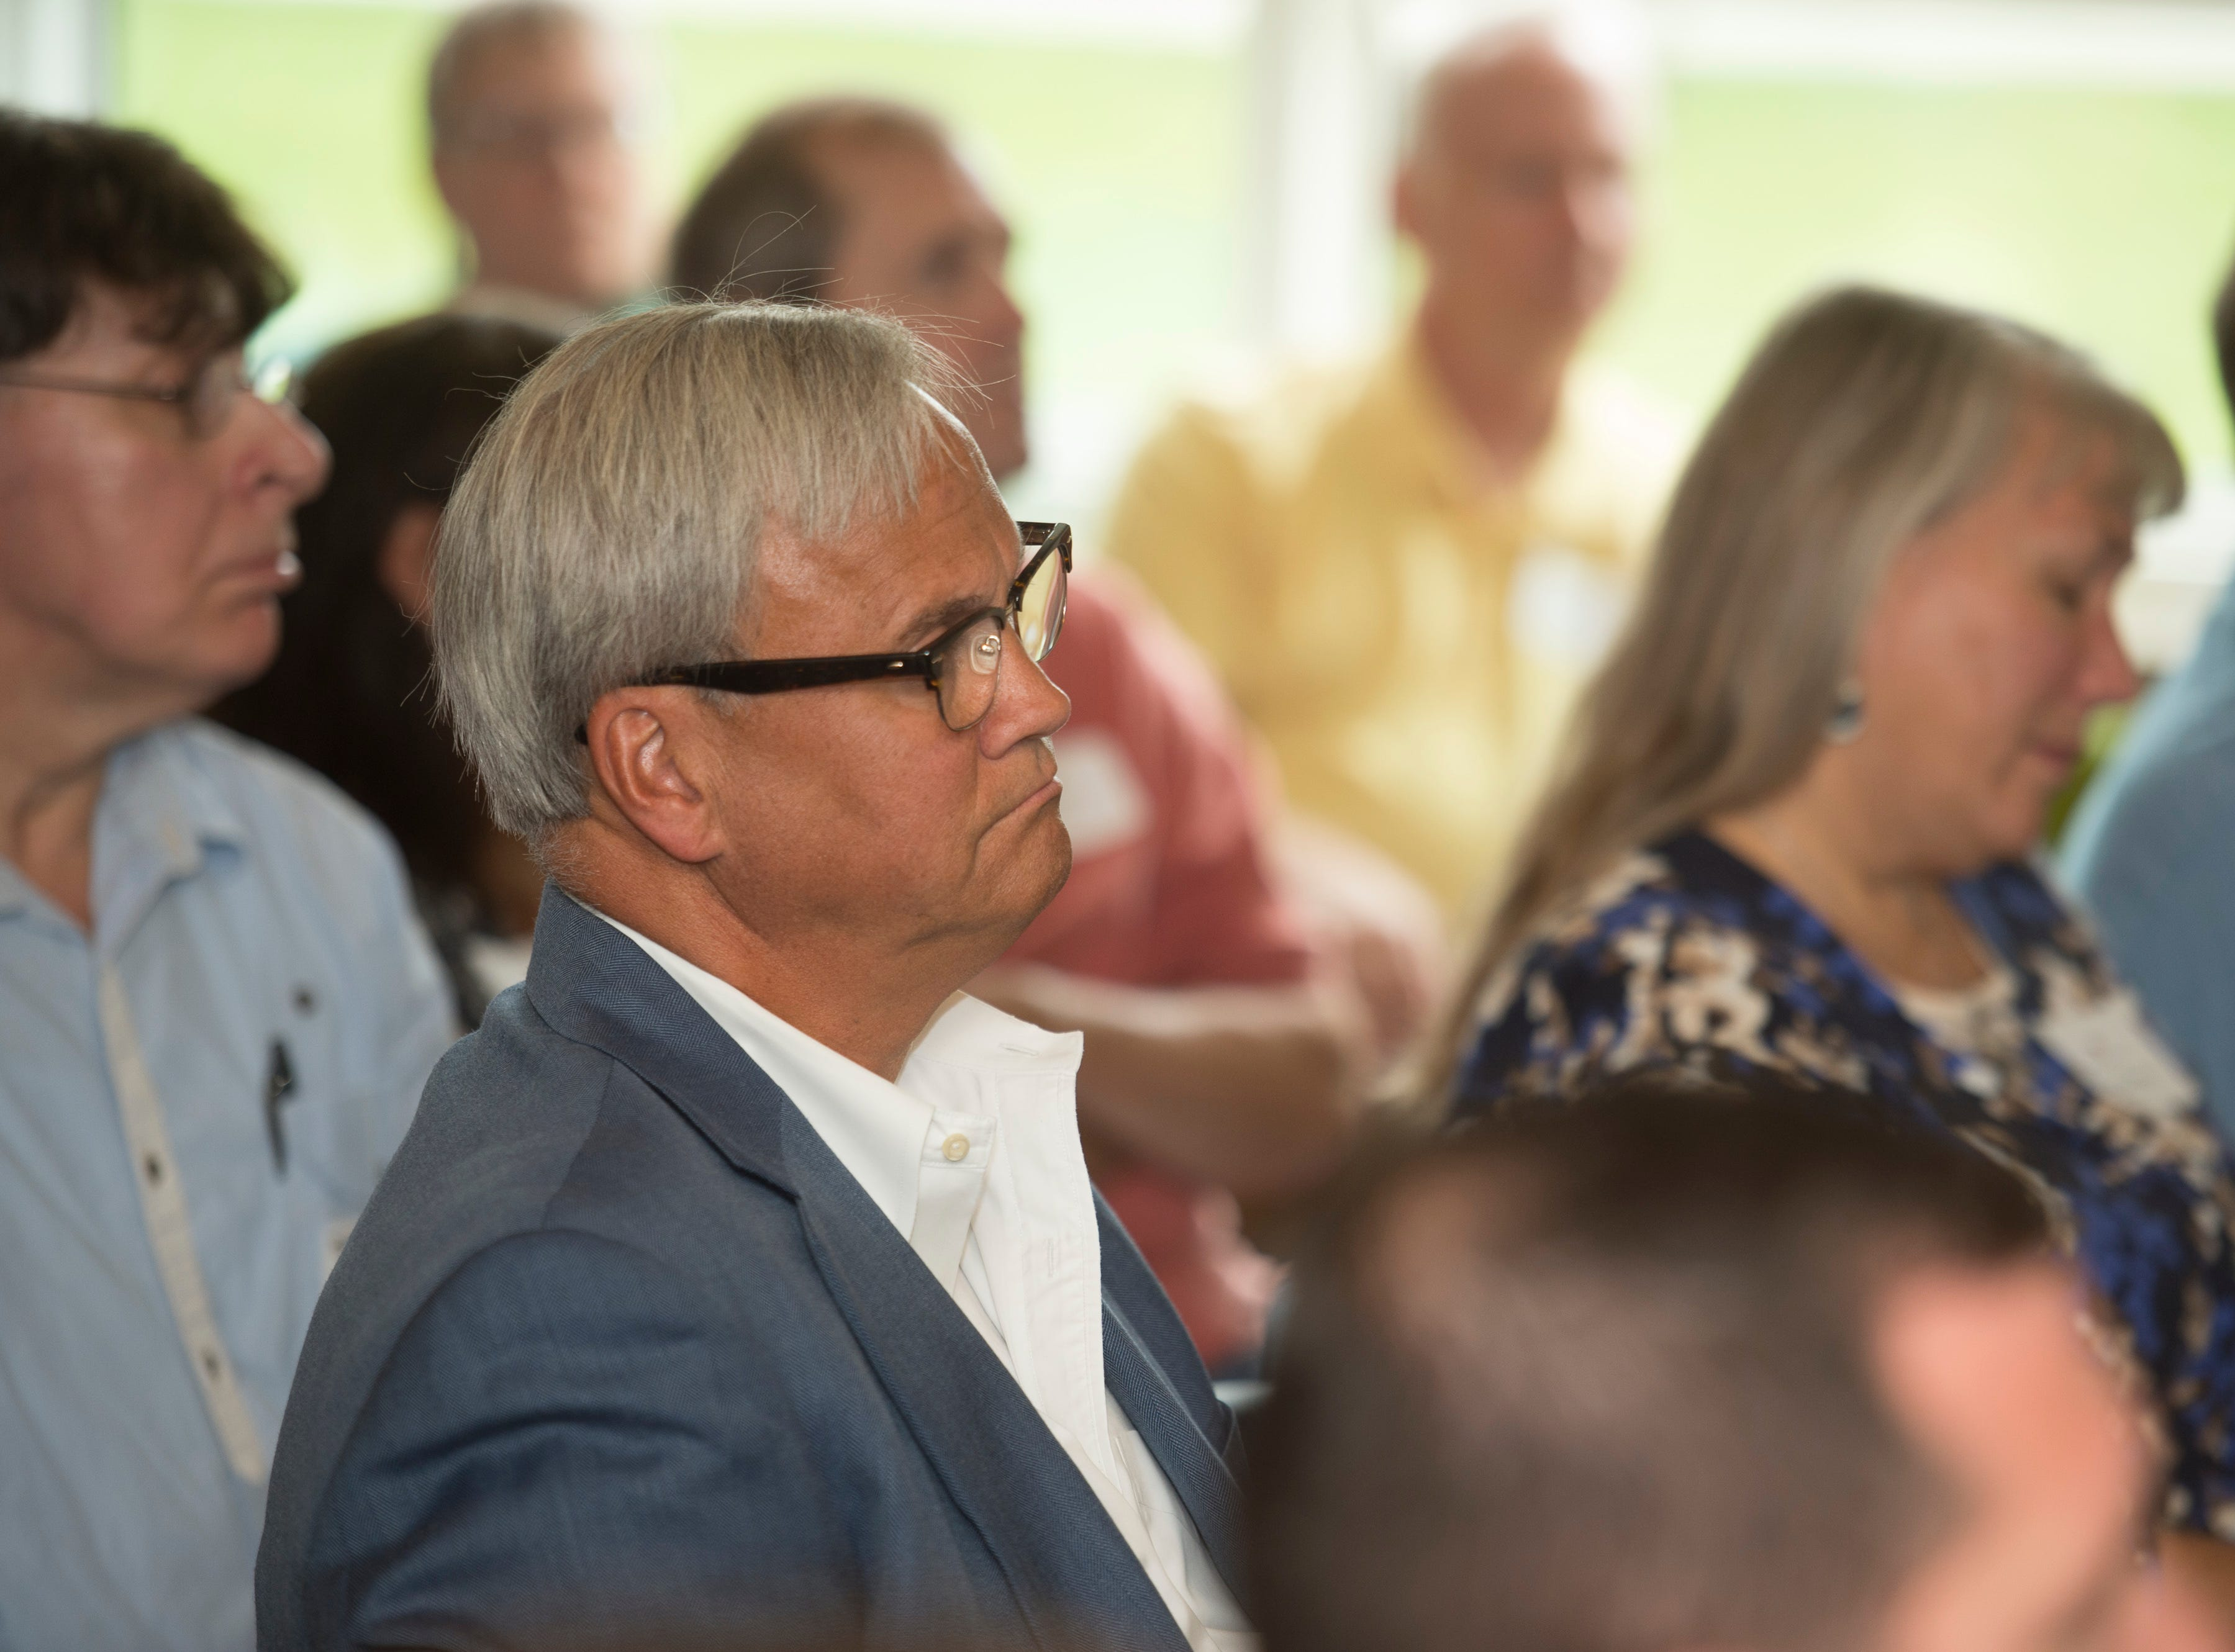 State Sen. Jim Merritt listens during news conference celebrating the opening of the Winchester House, a new drug treatment facility for women, in Winchester, Ind., on Wednesday, Aug. 1, 2018.